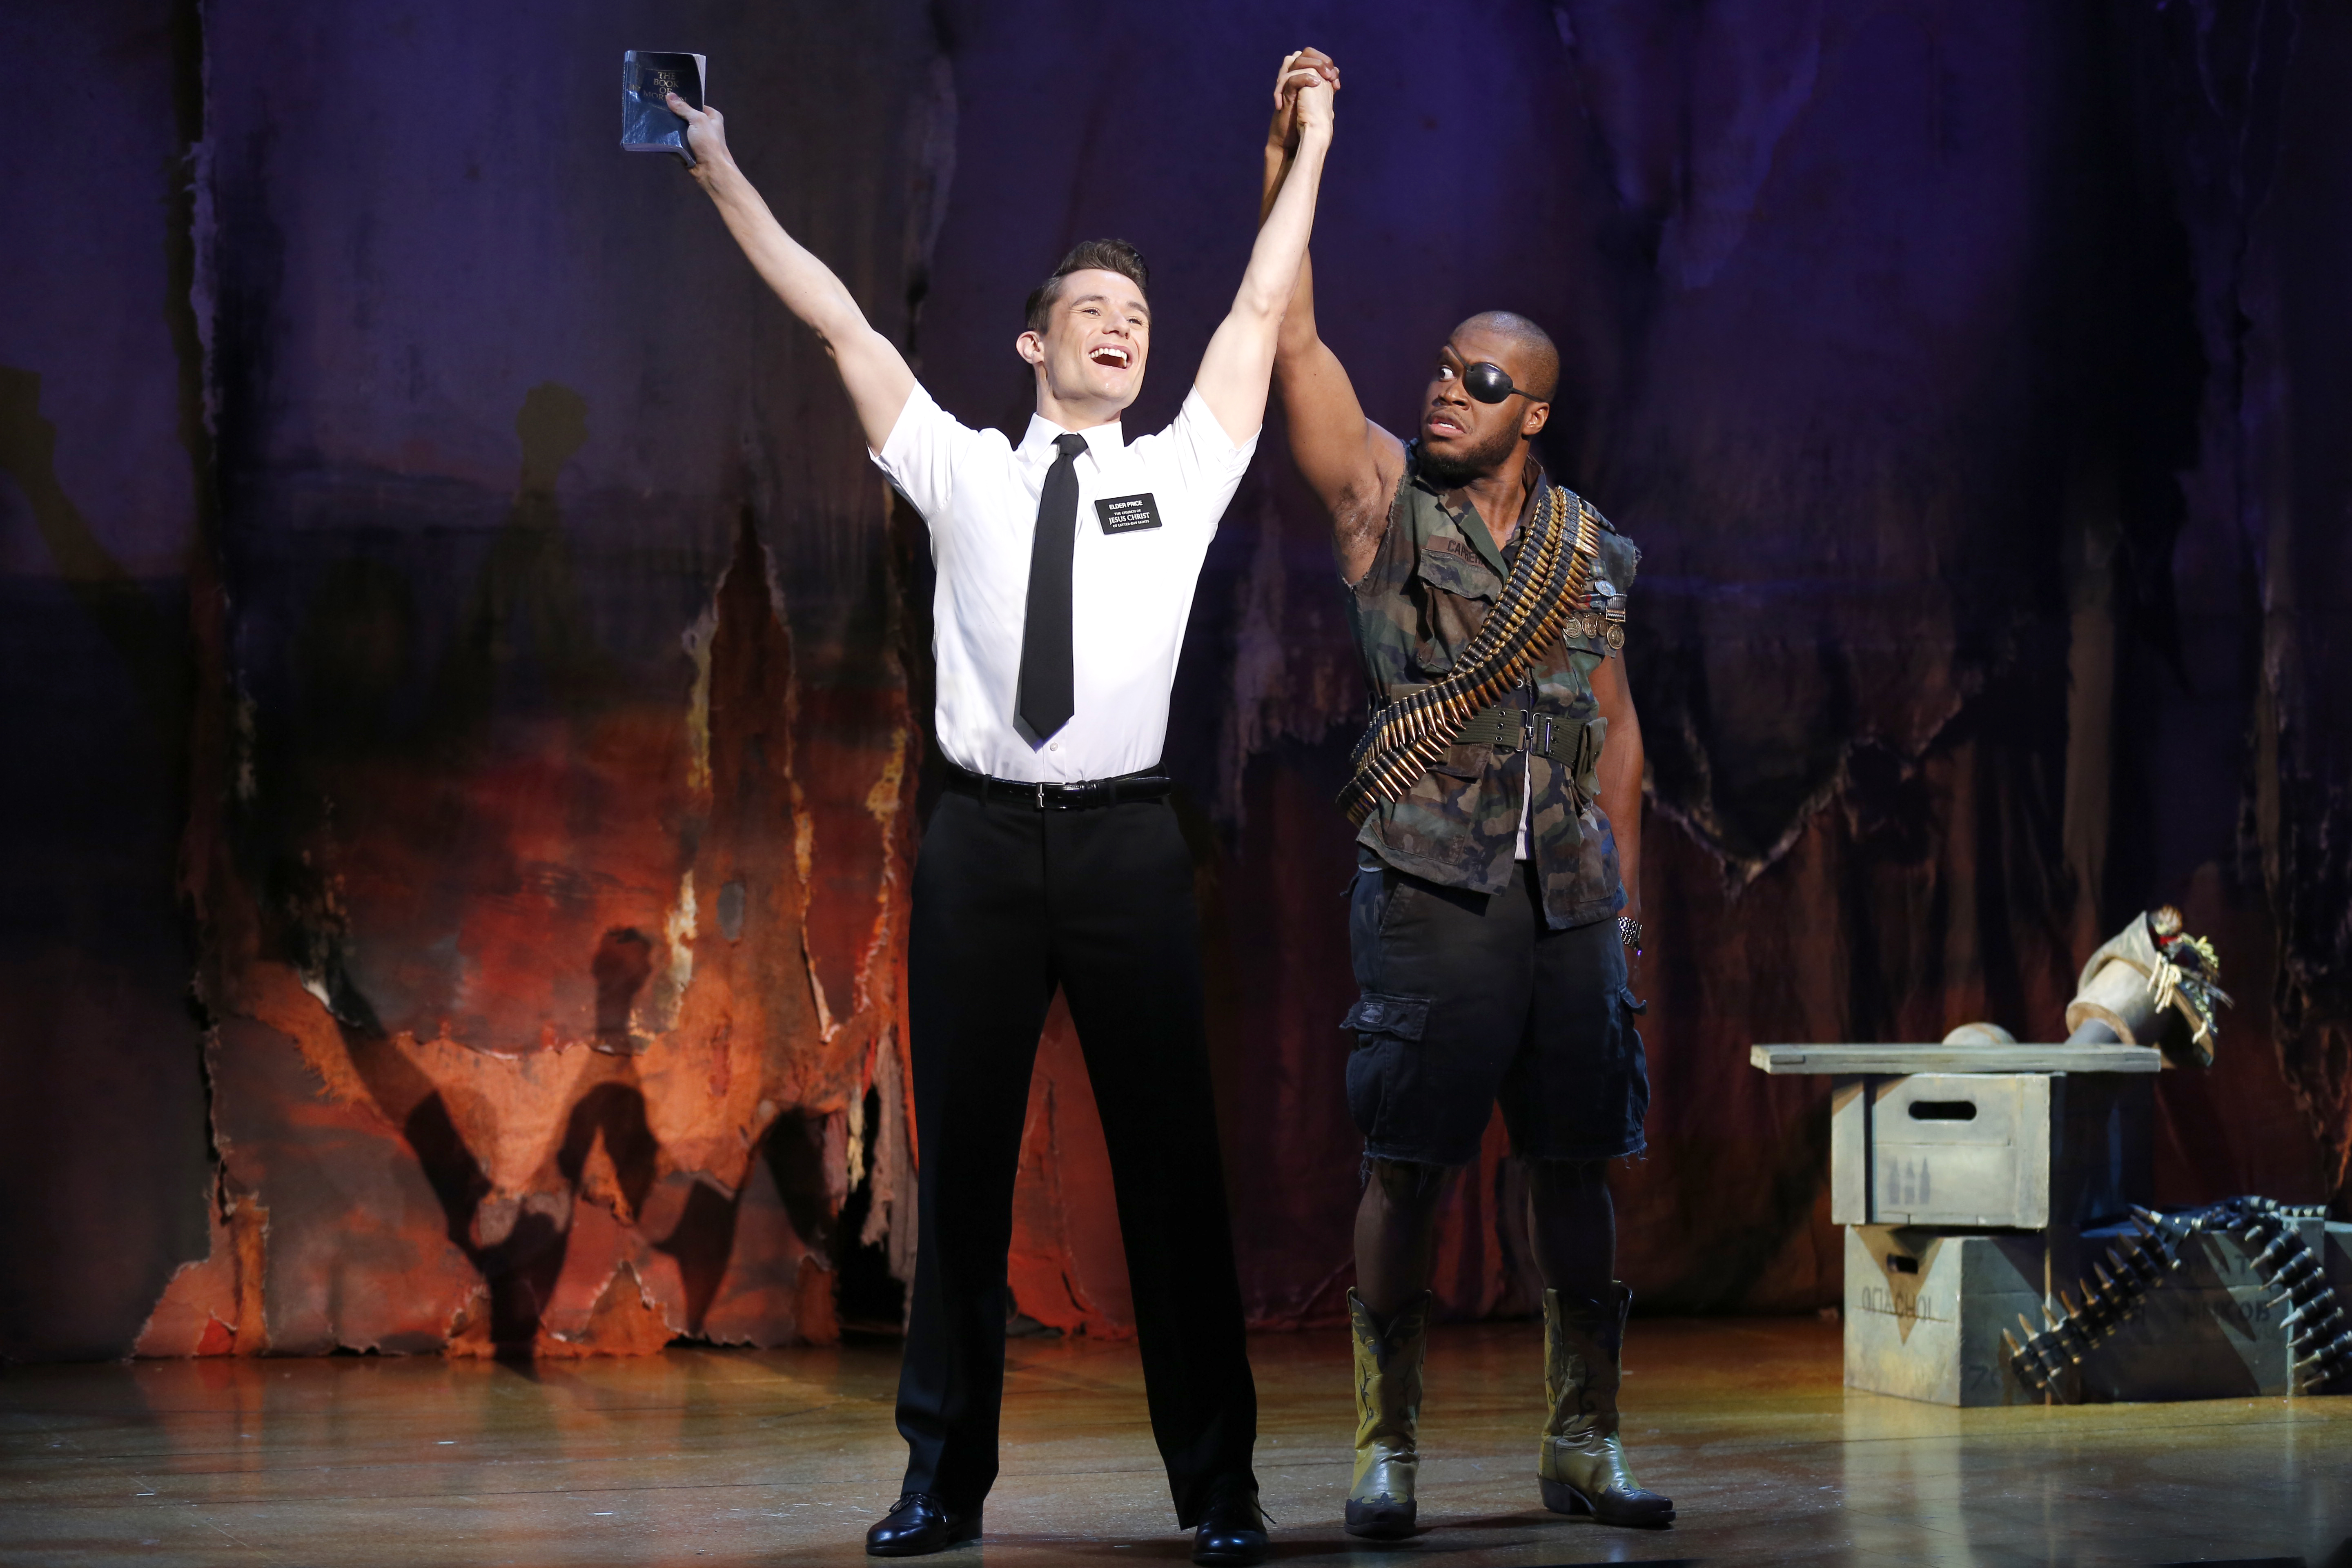 LDS Book of Mormon mobile bet at home